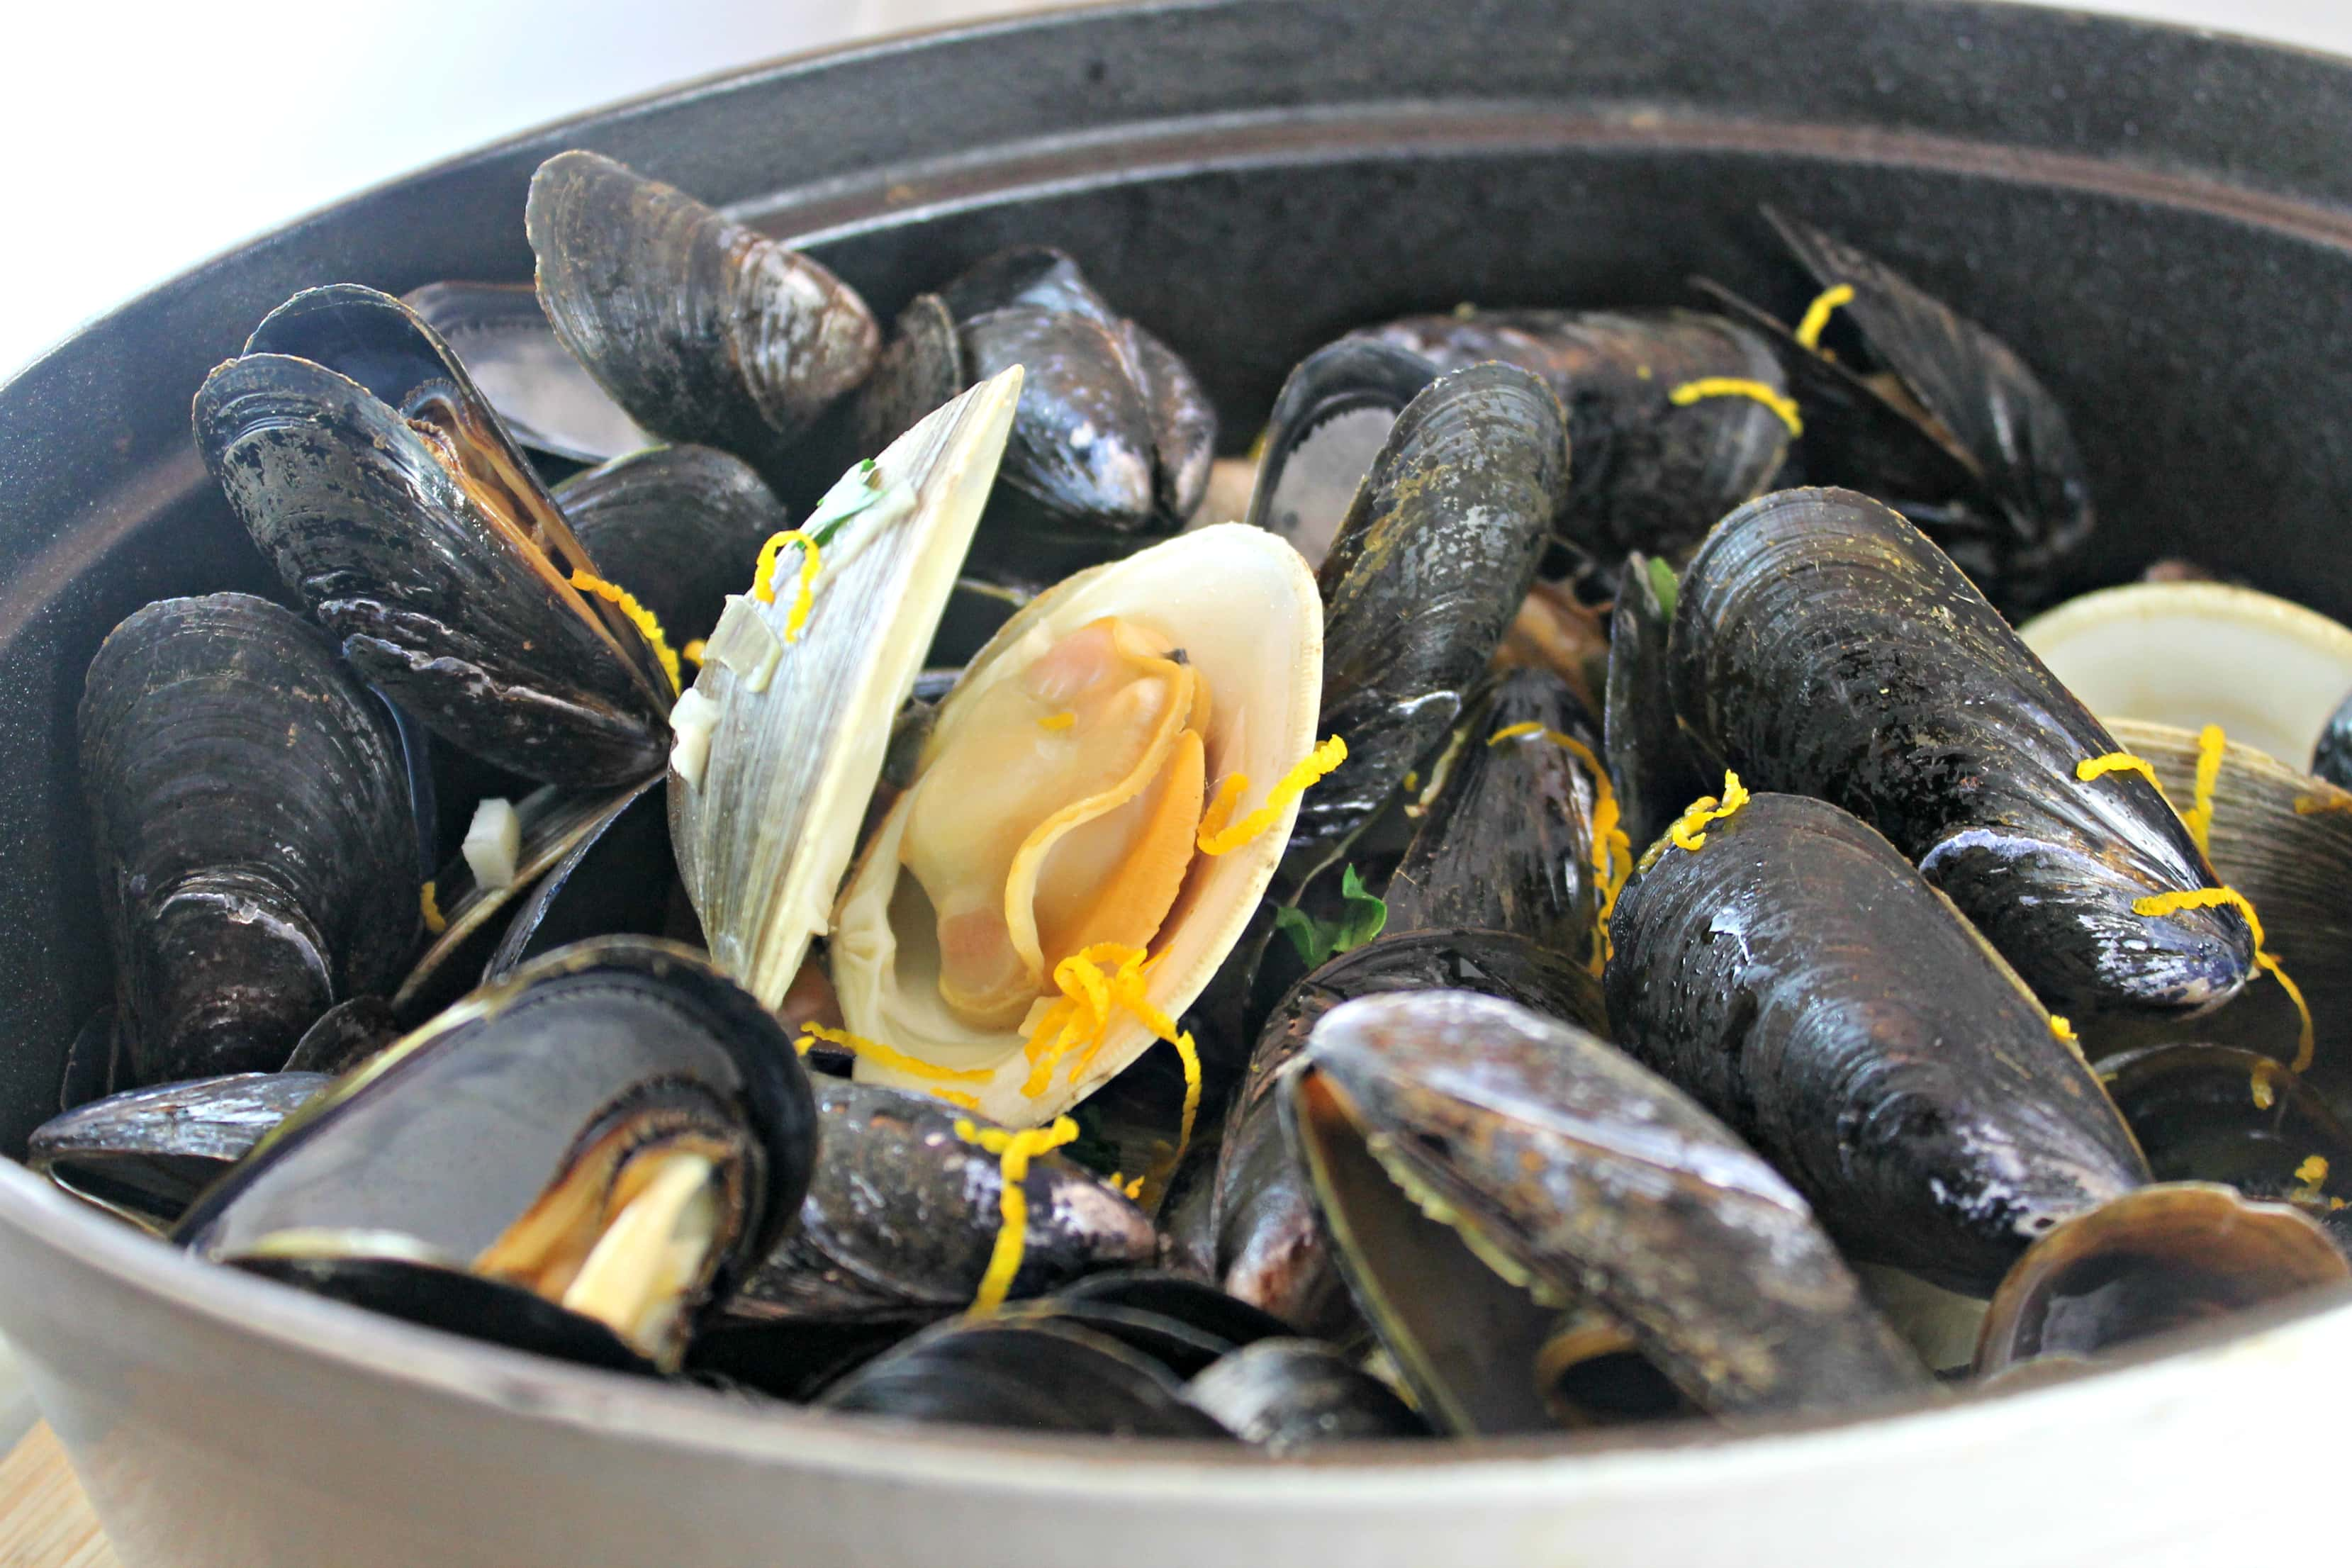 so I gravitated towards the recipe for Beer-Steams Clams and Mussels ...